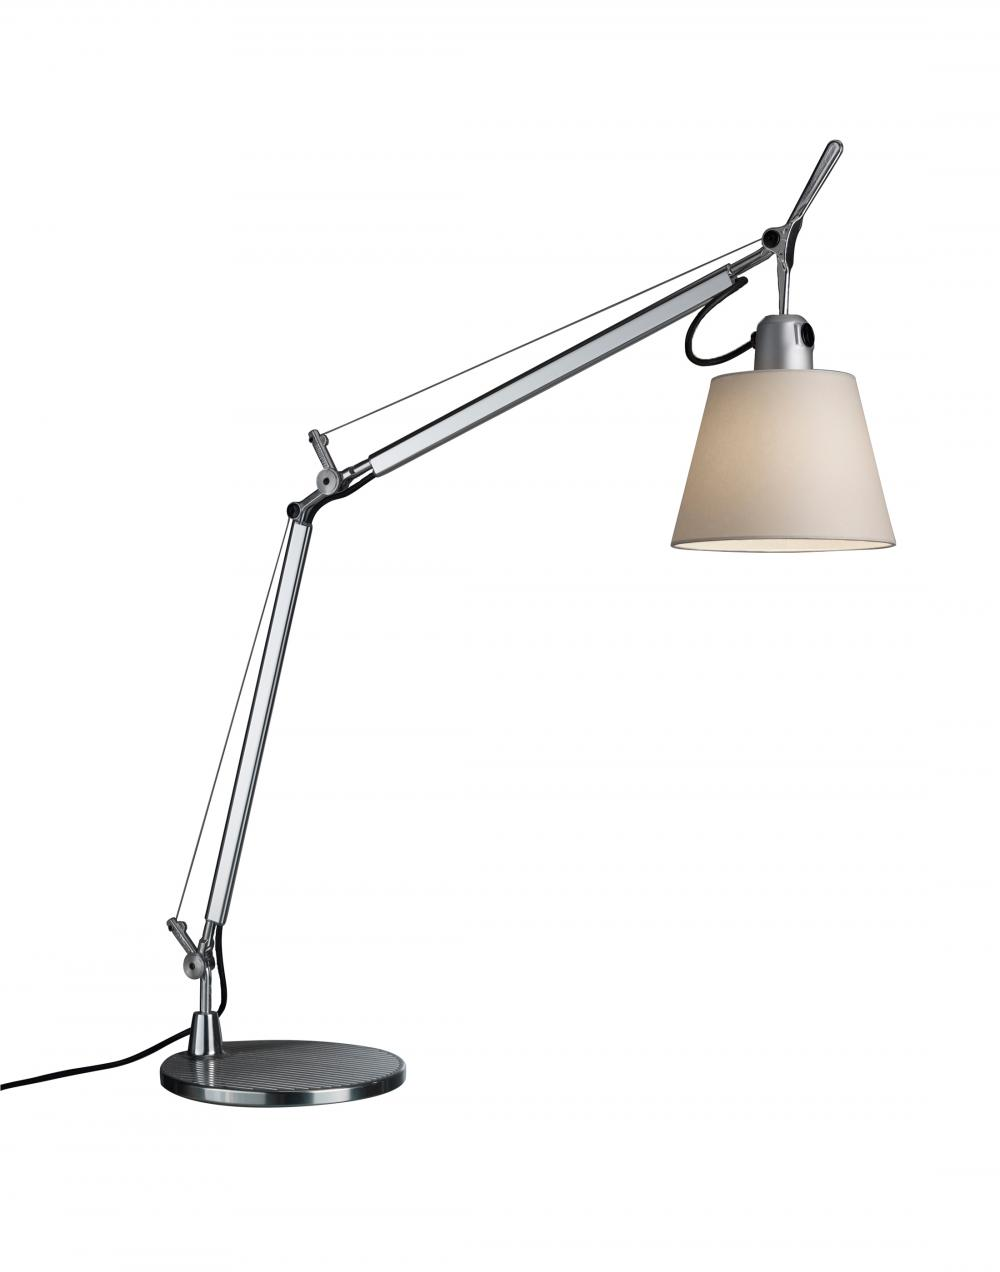 Tolomeo basculante table light by Artemide